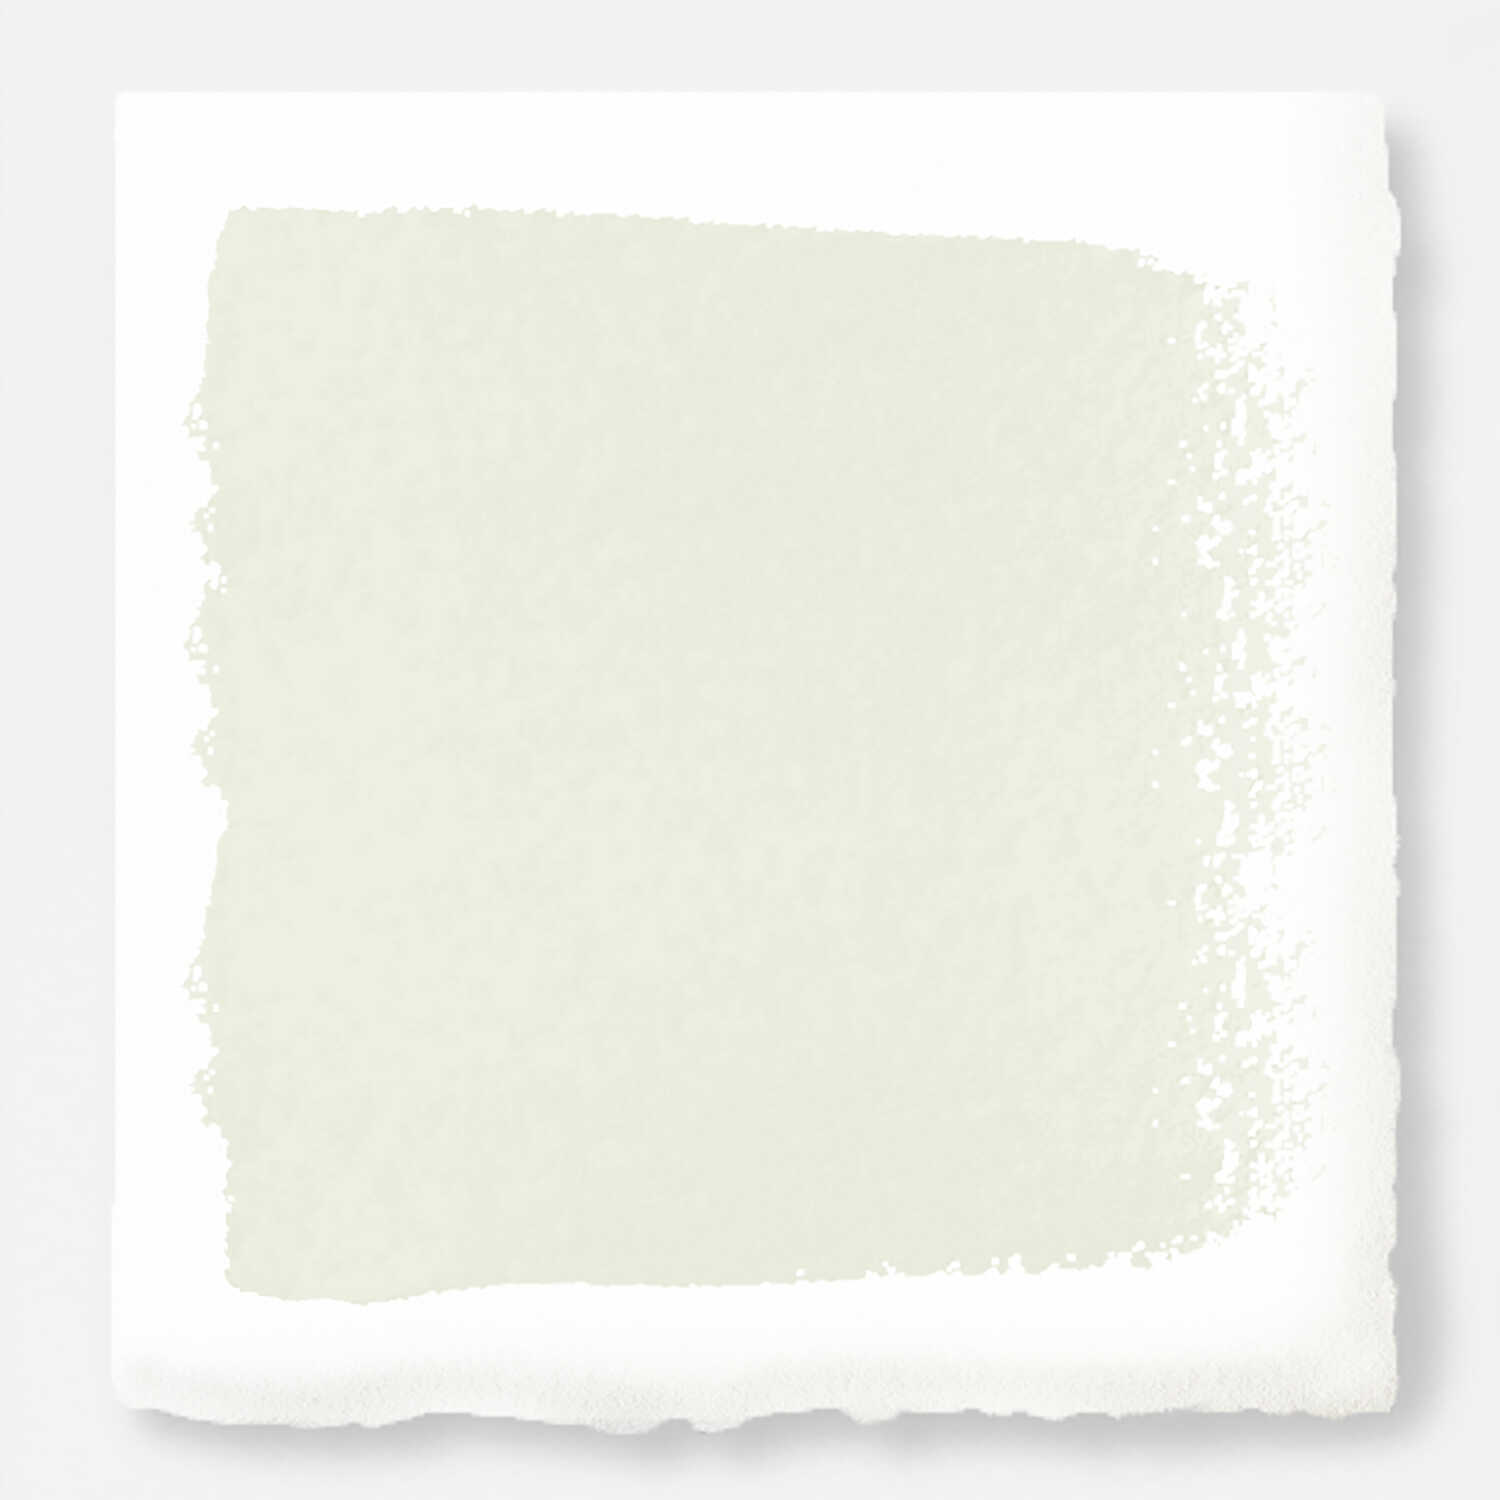 Magnolia Home  Flat  Panna Cotta  Exterior Paint and Primer  1 gal.